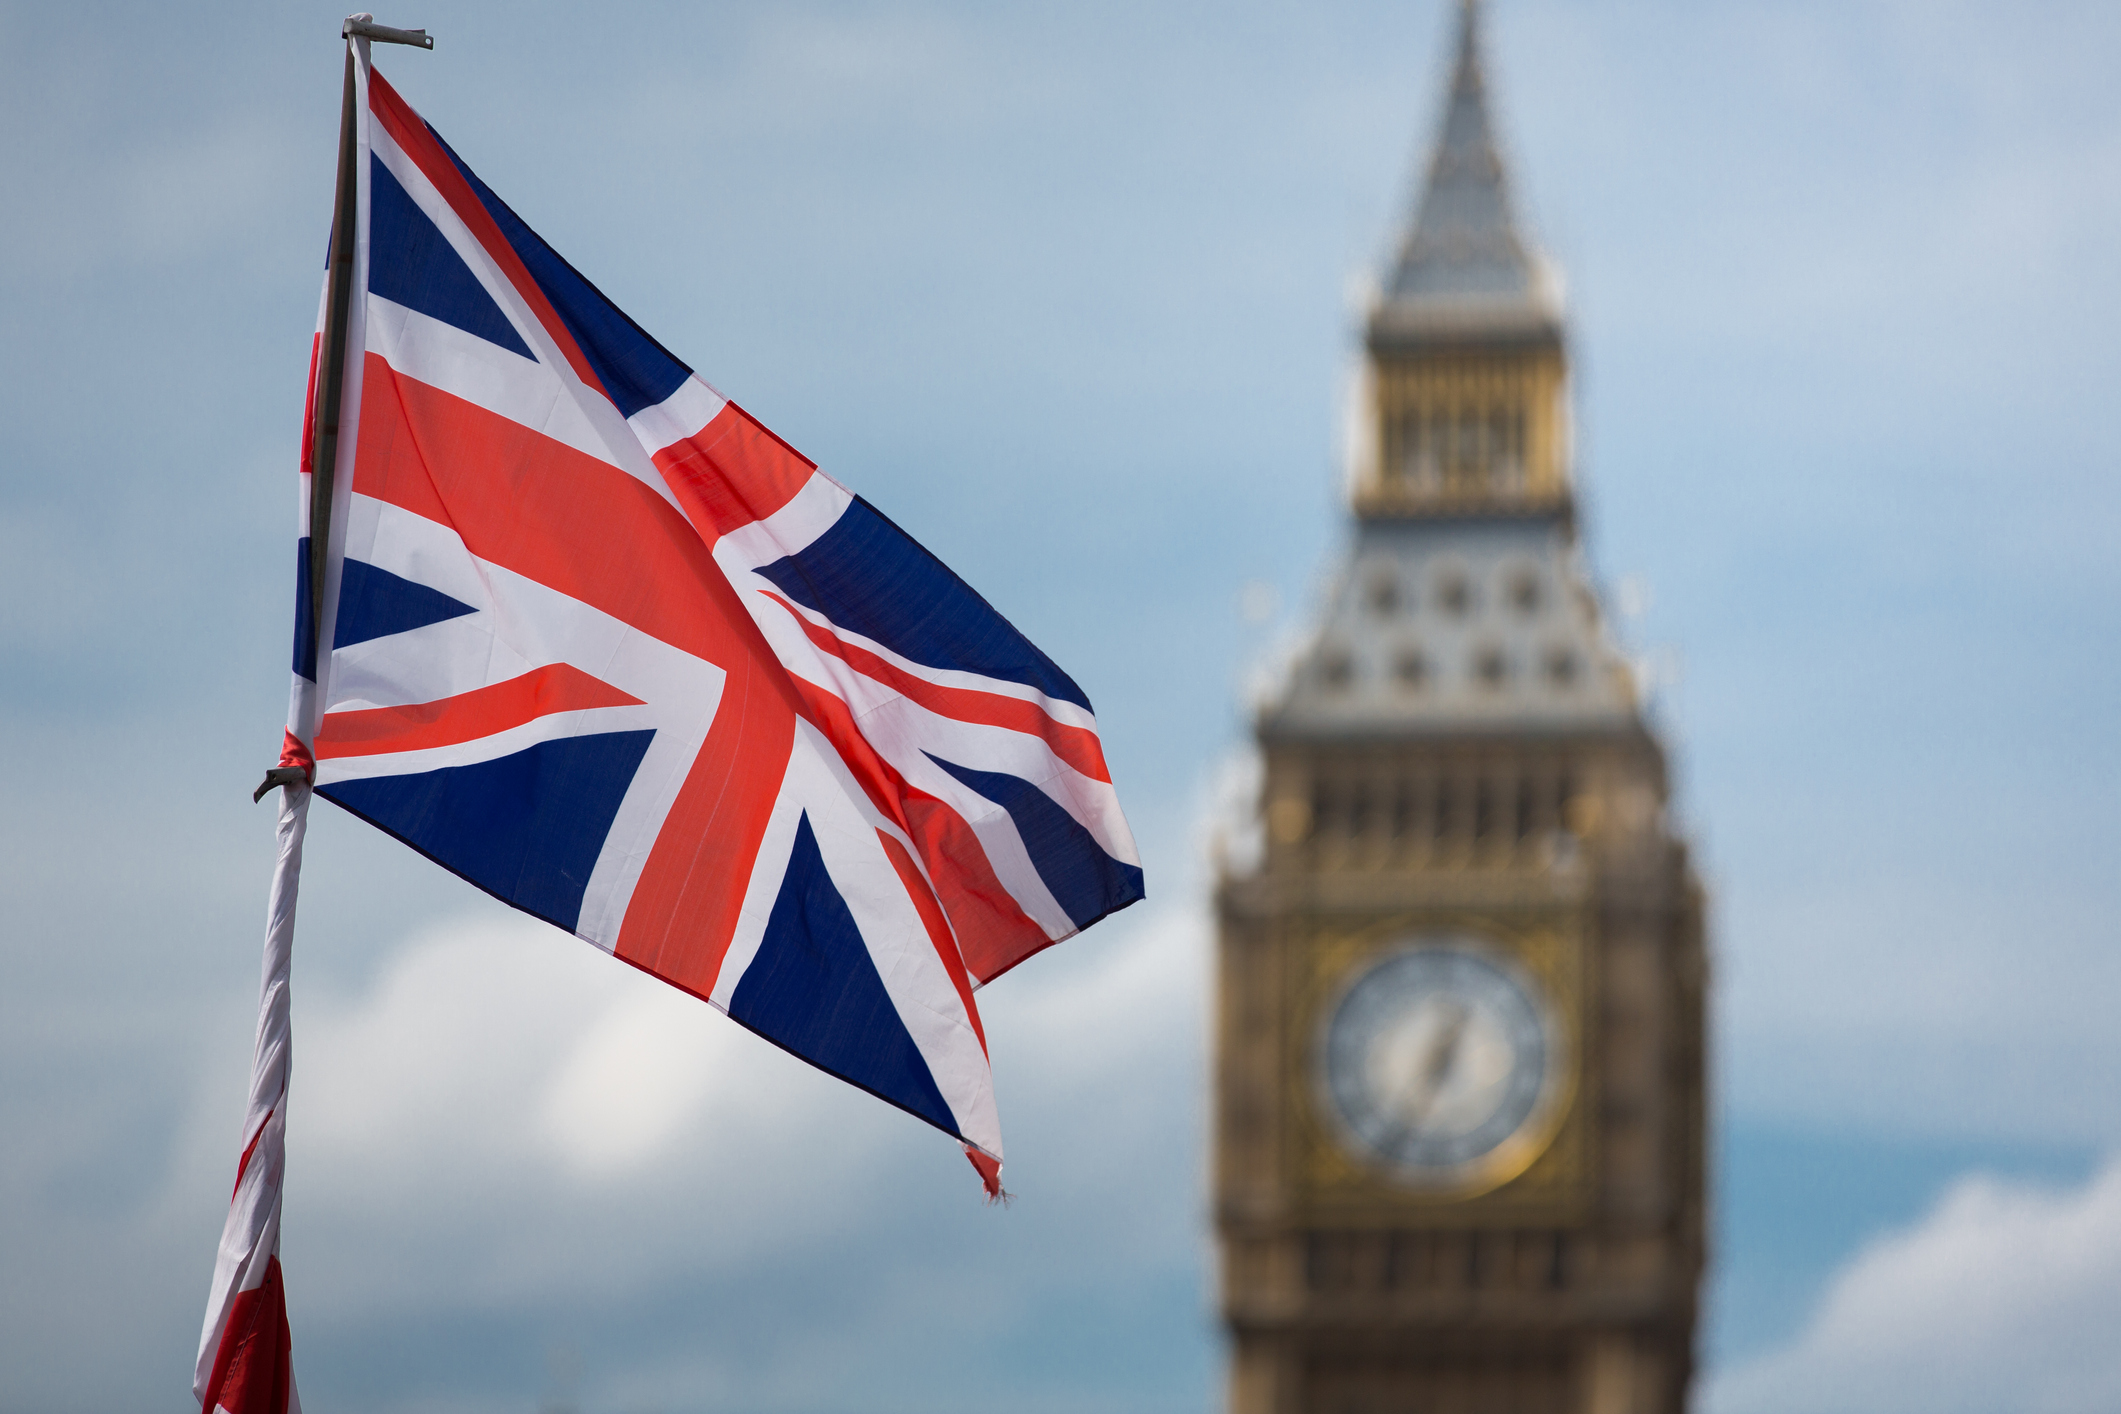 Closeup of a British Union Jack flag with Big Ben clock tower in the background